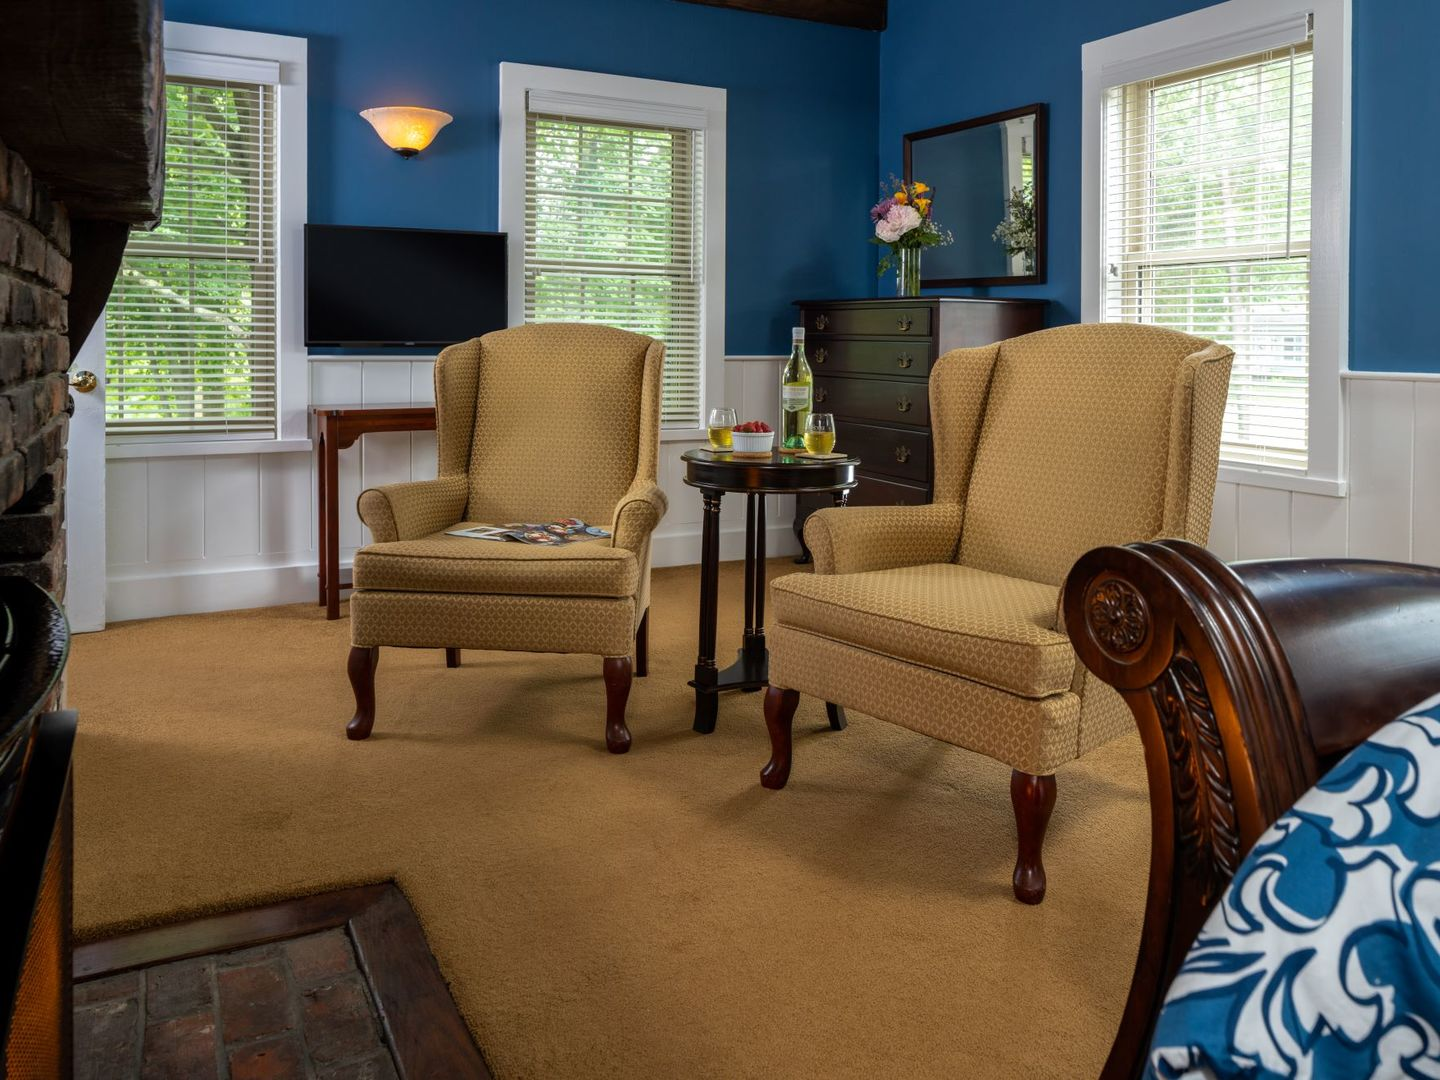 A living room filled with furniture and a large window at 1802 House Bed and Breakfast Inn.